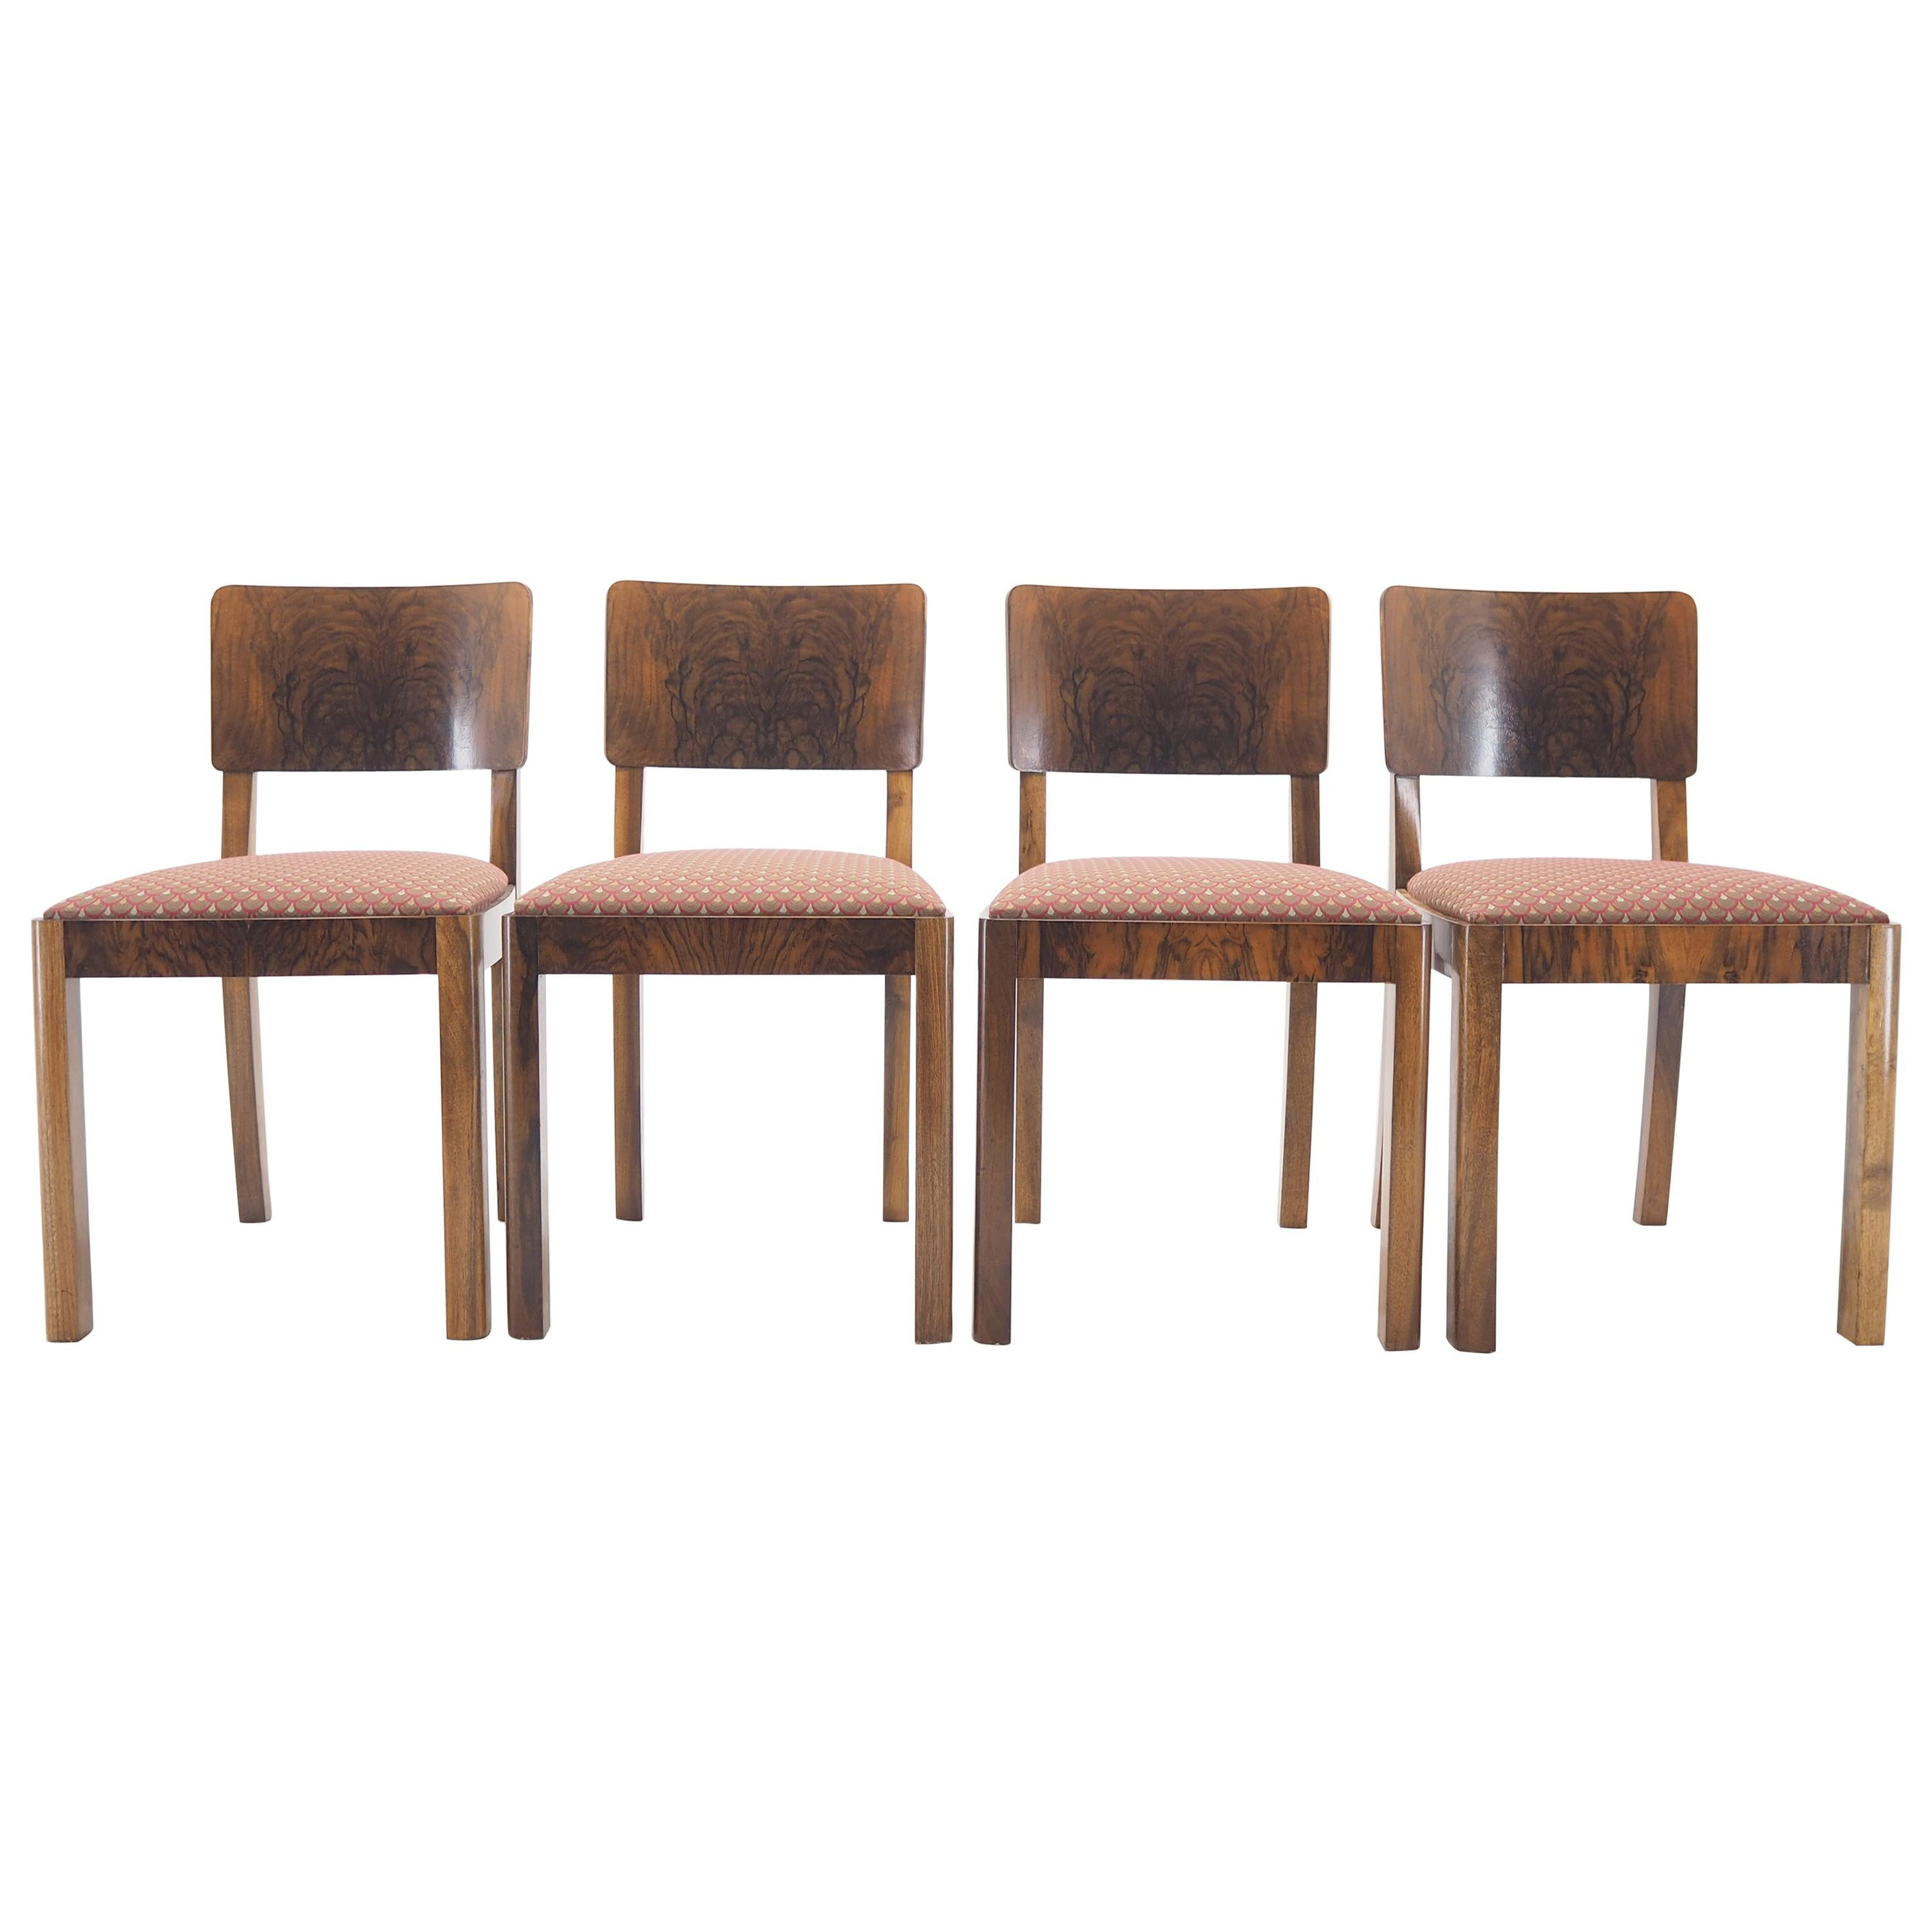 Set of Four Art Deco Dining Chairs, Czechoslovakia, 1930s